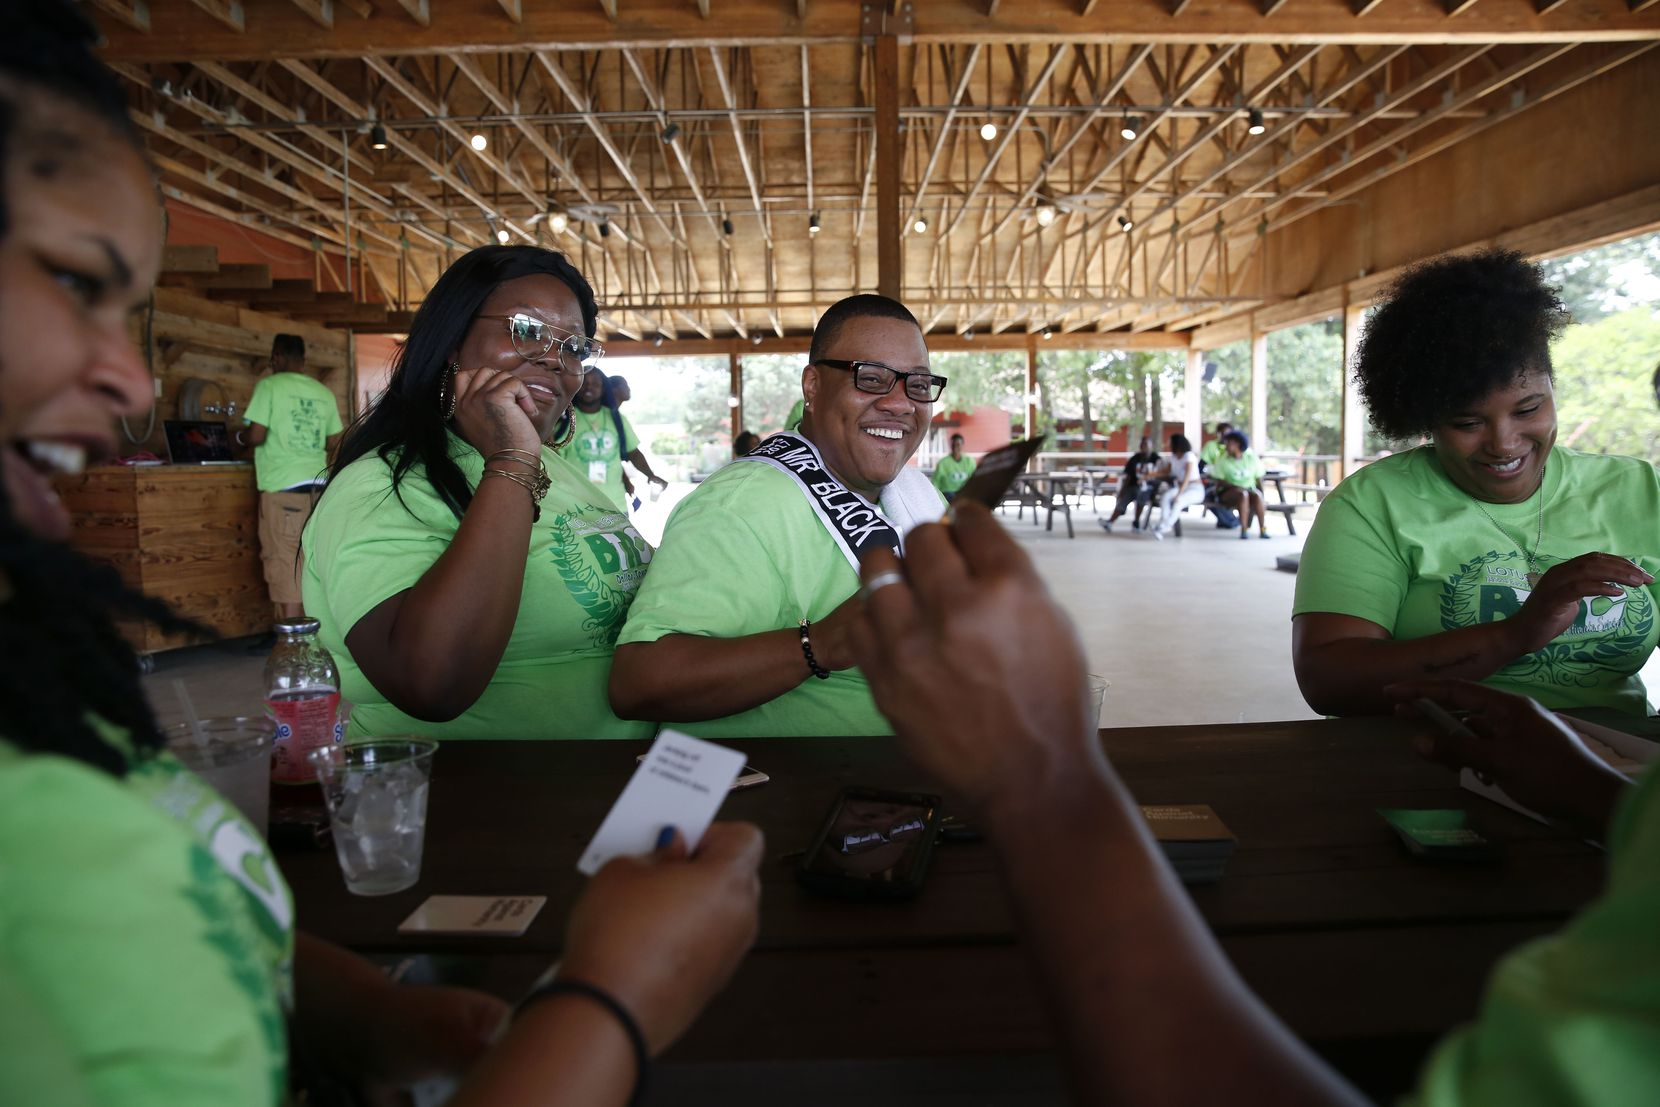 Trenton Johnson (center), a transgender man, sits with his fiancee Bridget Charleston (left) to play Cards Against Humanity with his friends during the Black Trans Advocacy Conference family day at Circle R Ranch in Flower Mound, Texas on Saturday, April 29, 2017.